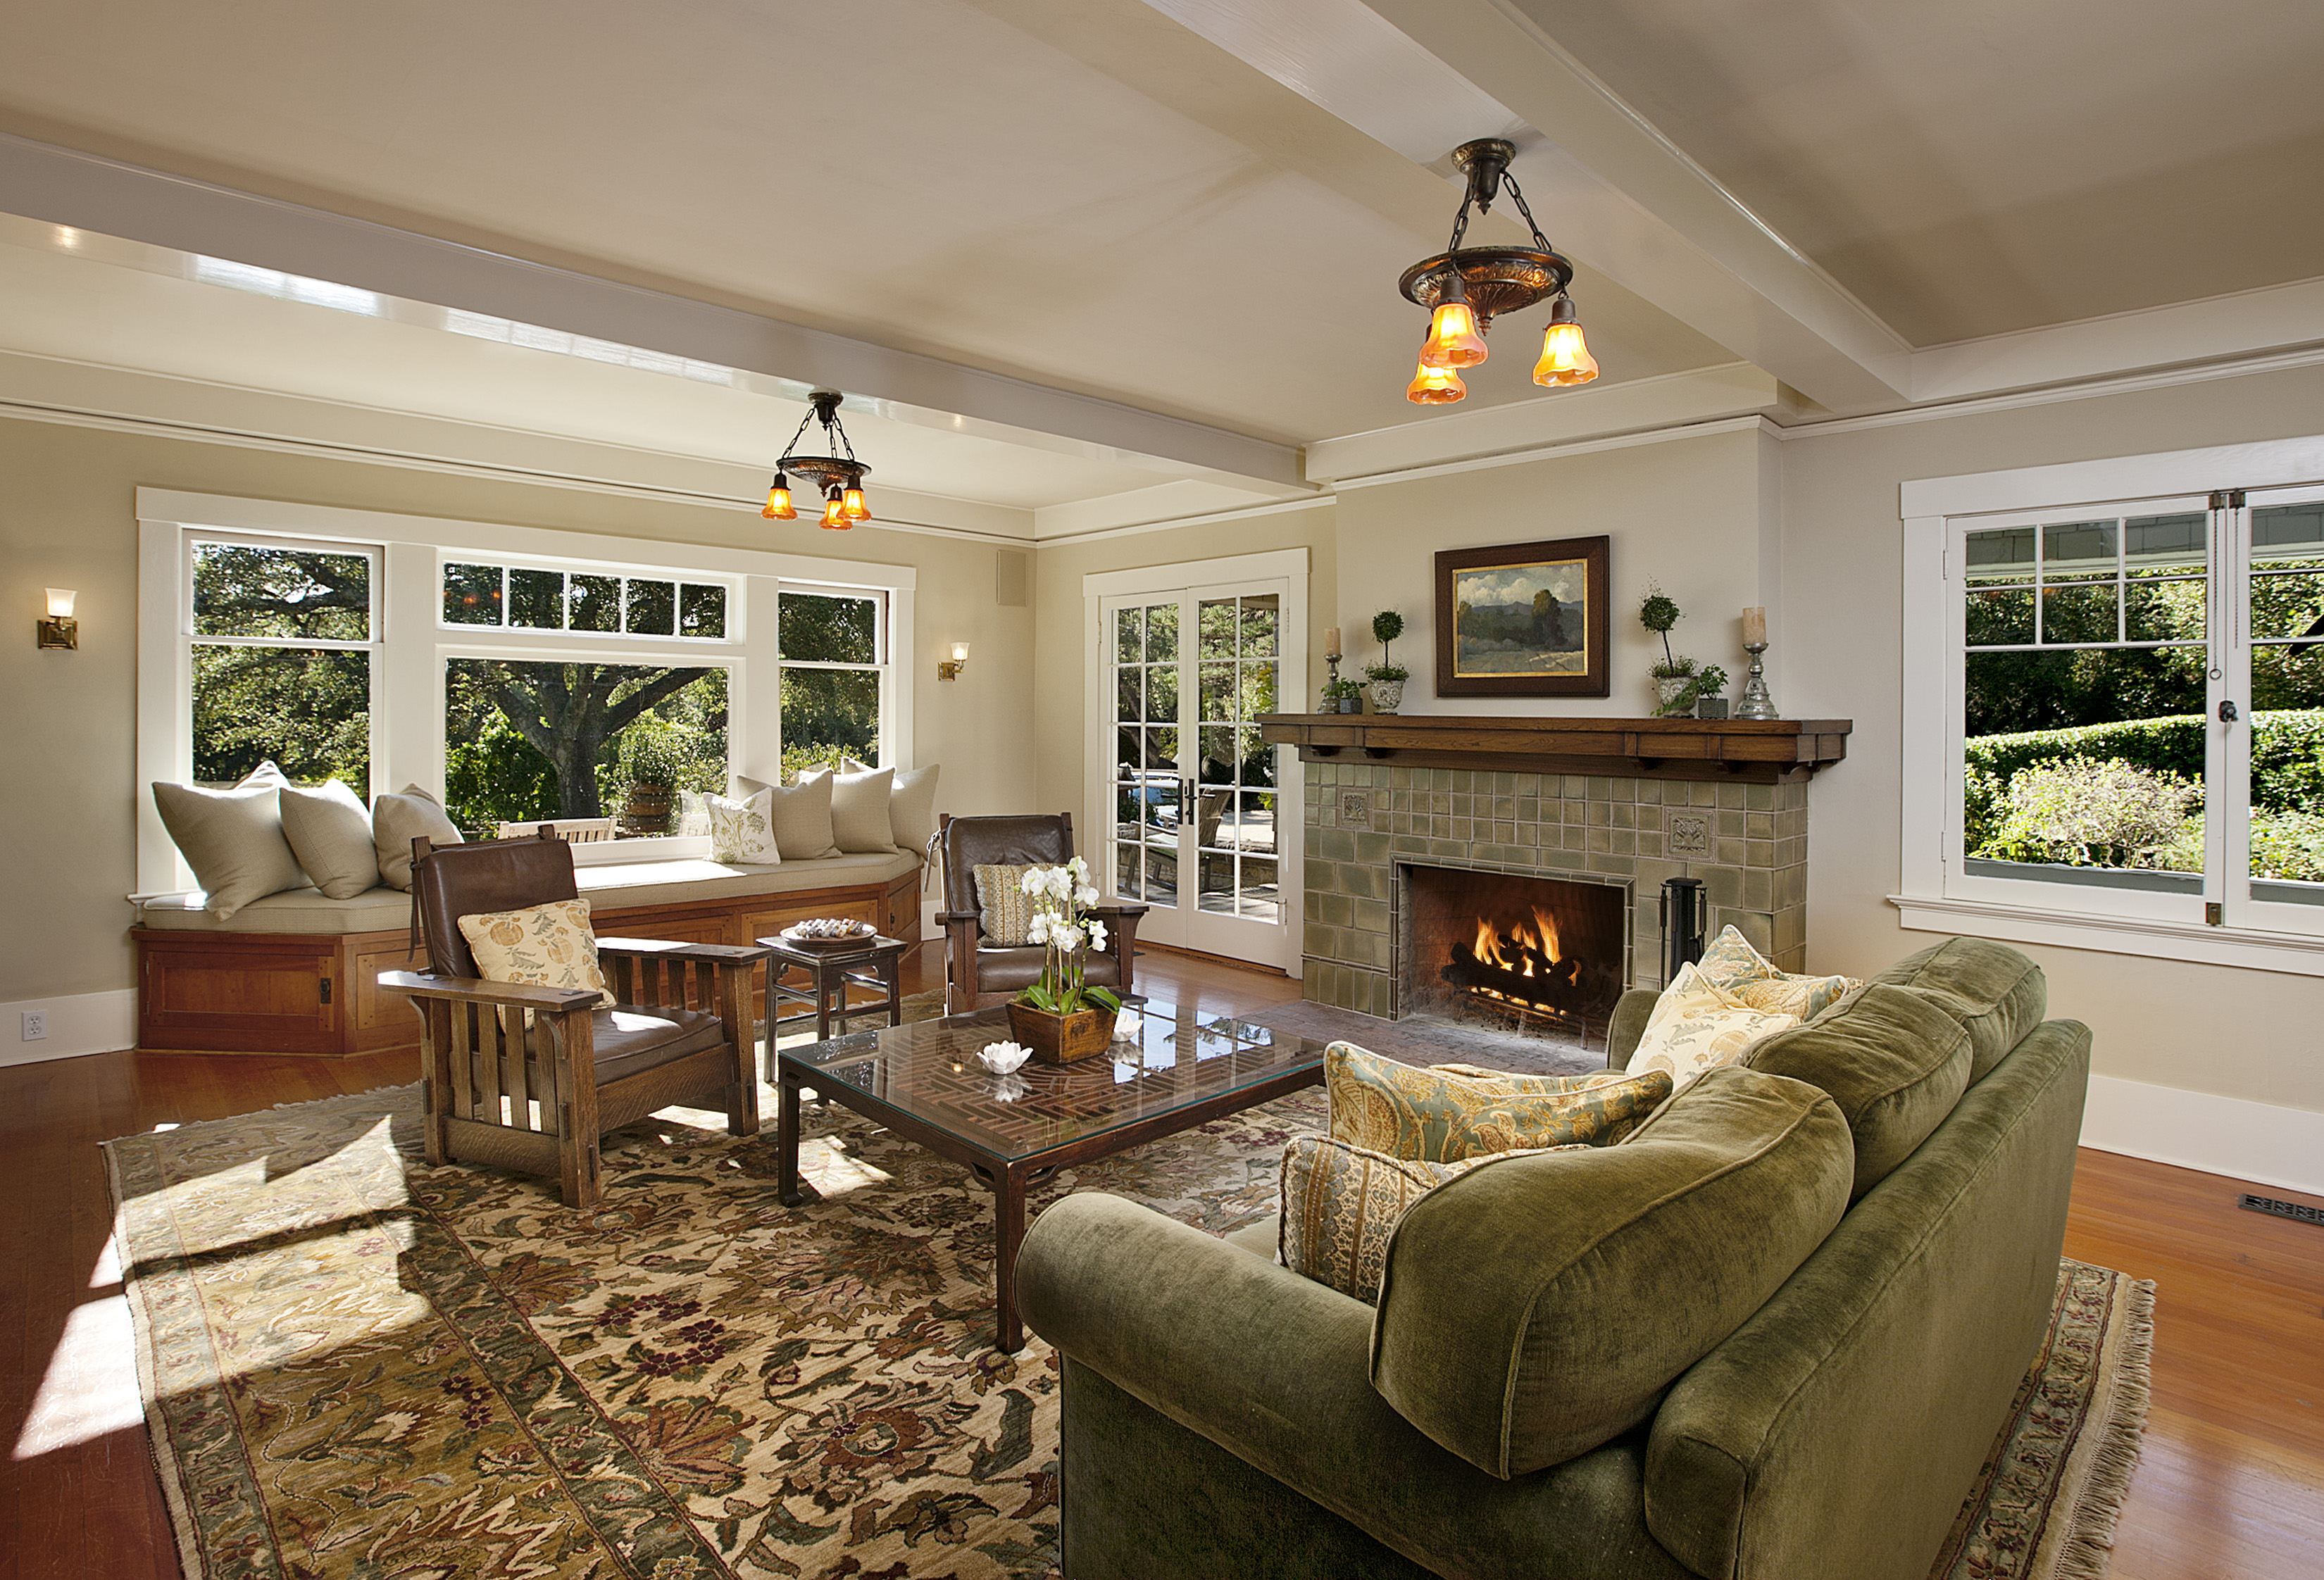 Popular home styles for 2012 montecito real estate for Home style